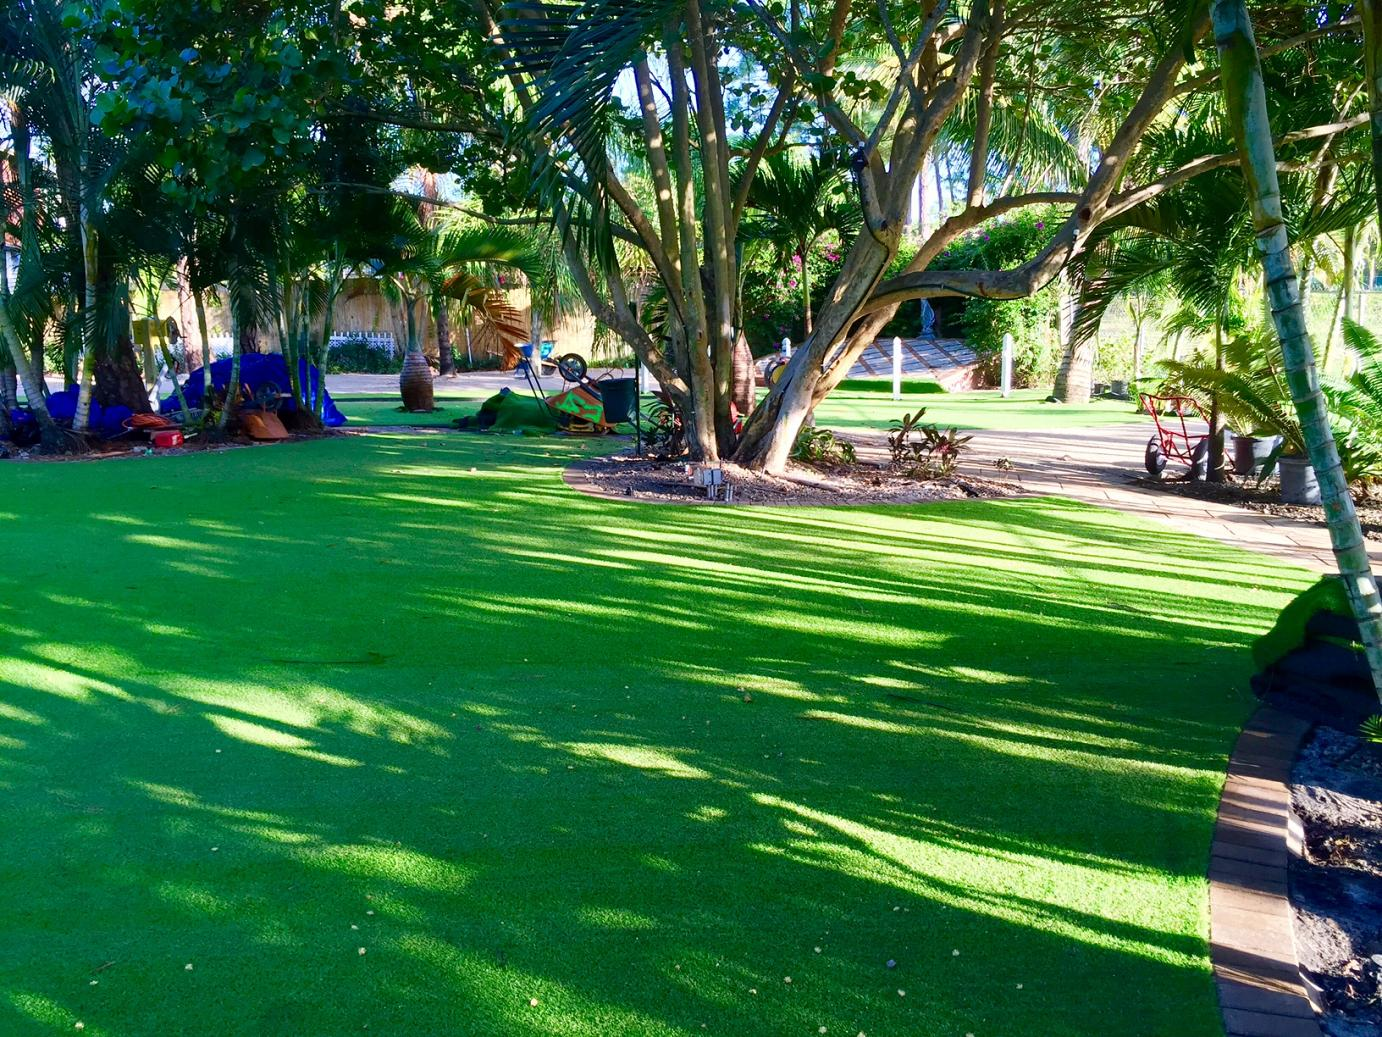 syntheticgrass How to Save Money with Artificial Turf